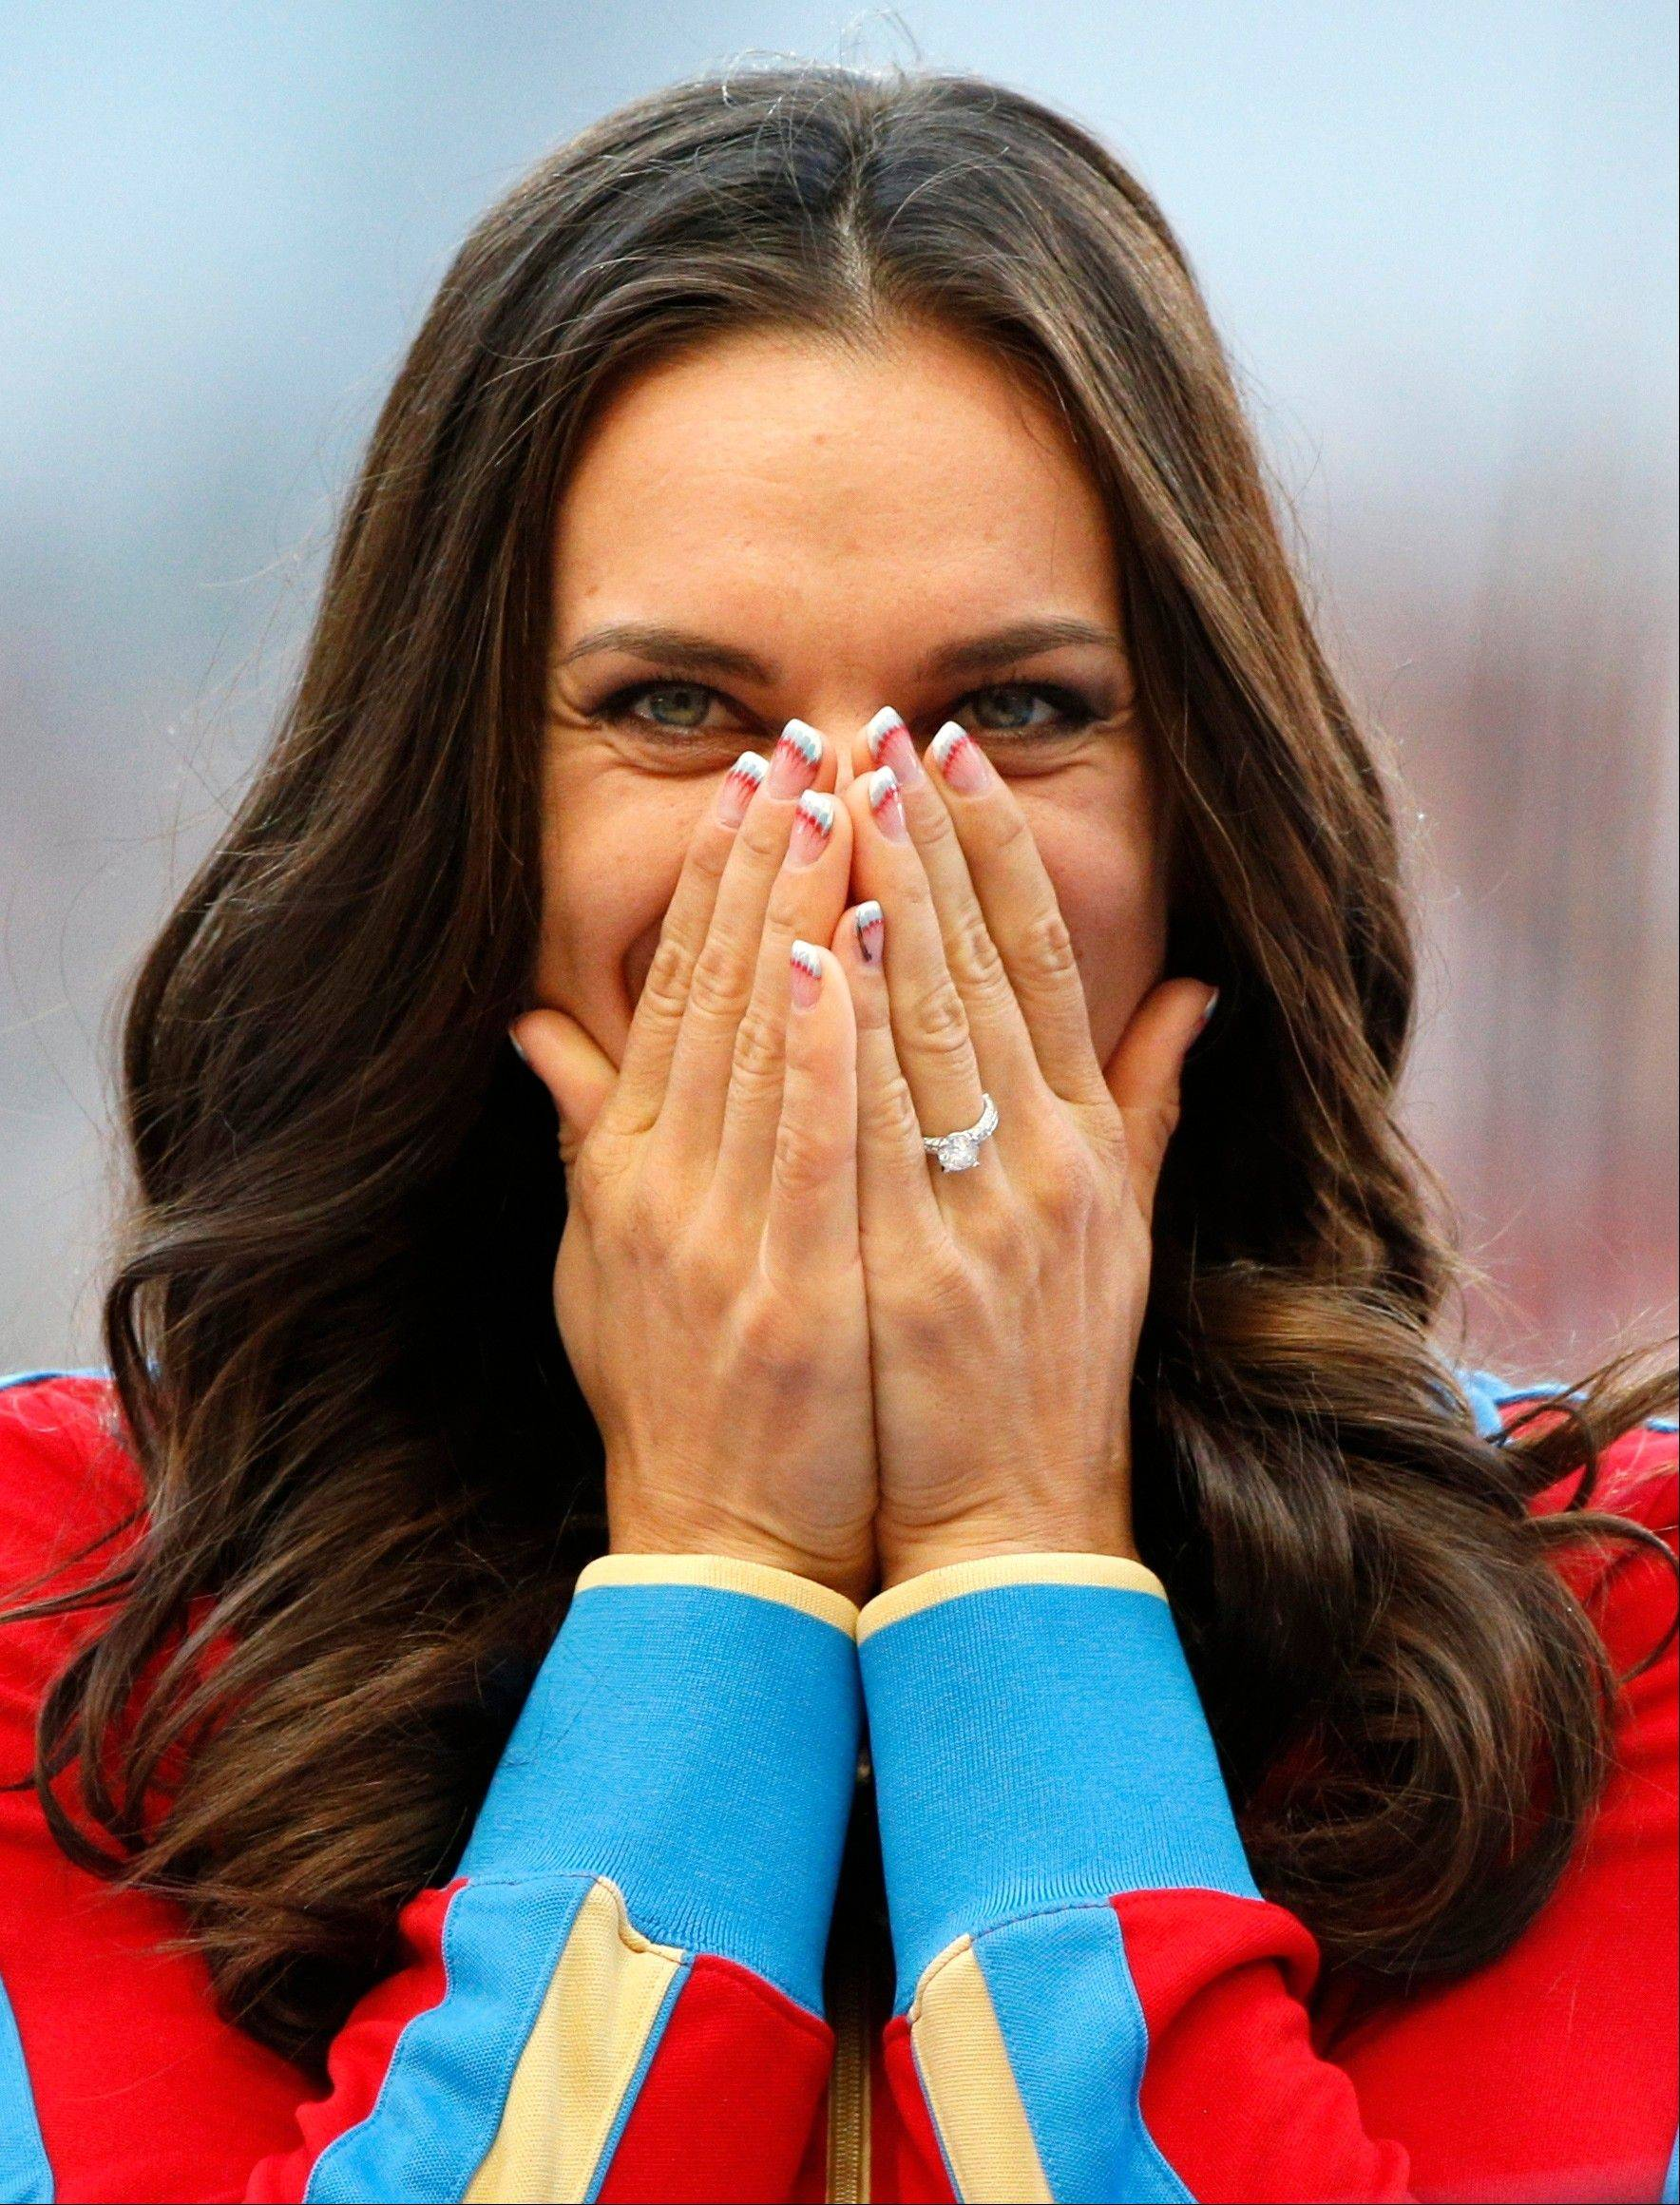 Russia's Yelena Isinbayeva reacts as she stands on the podium after receiving the gold medal Thursday in the women's pole vault.